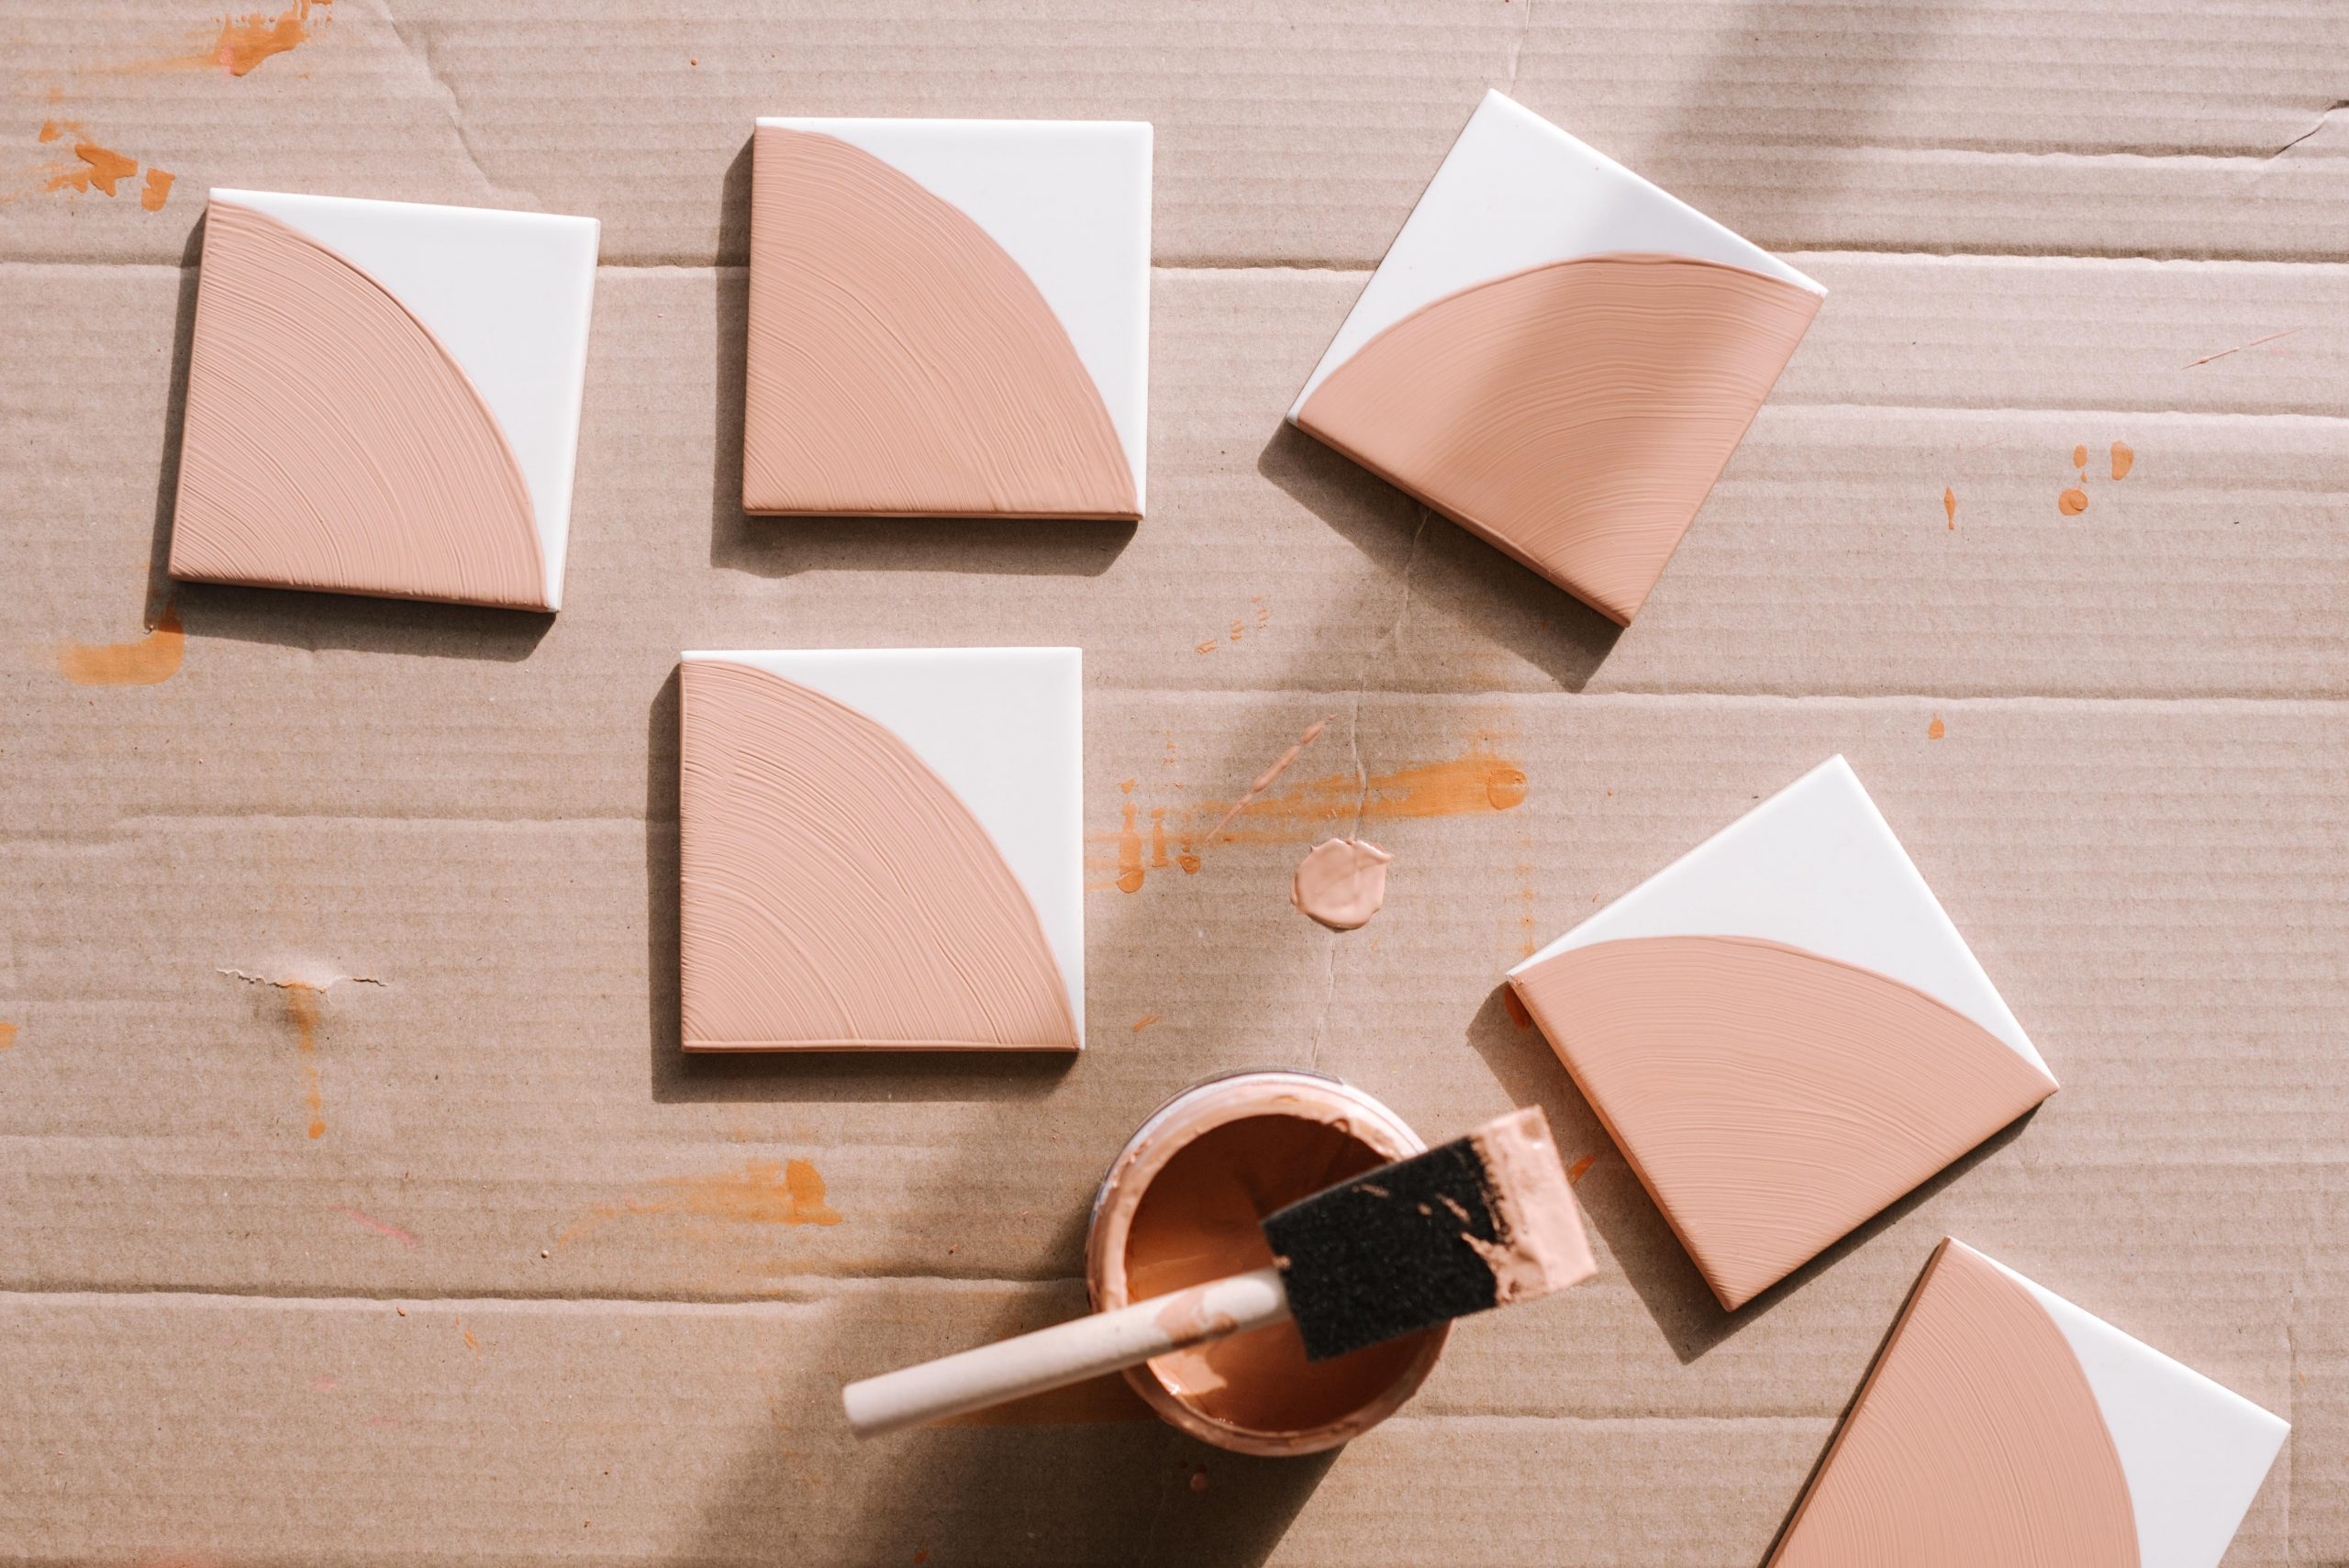 how to paint patterned tiles by hand